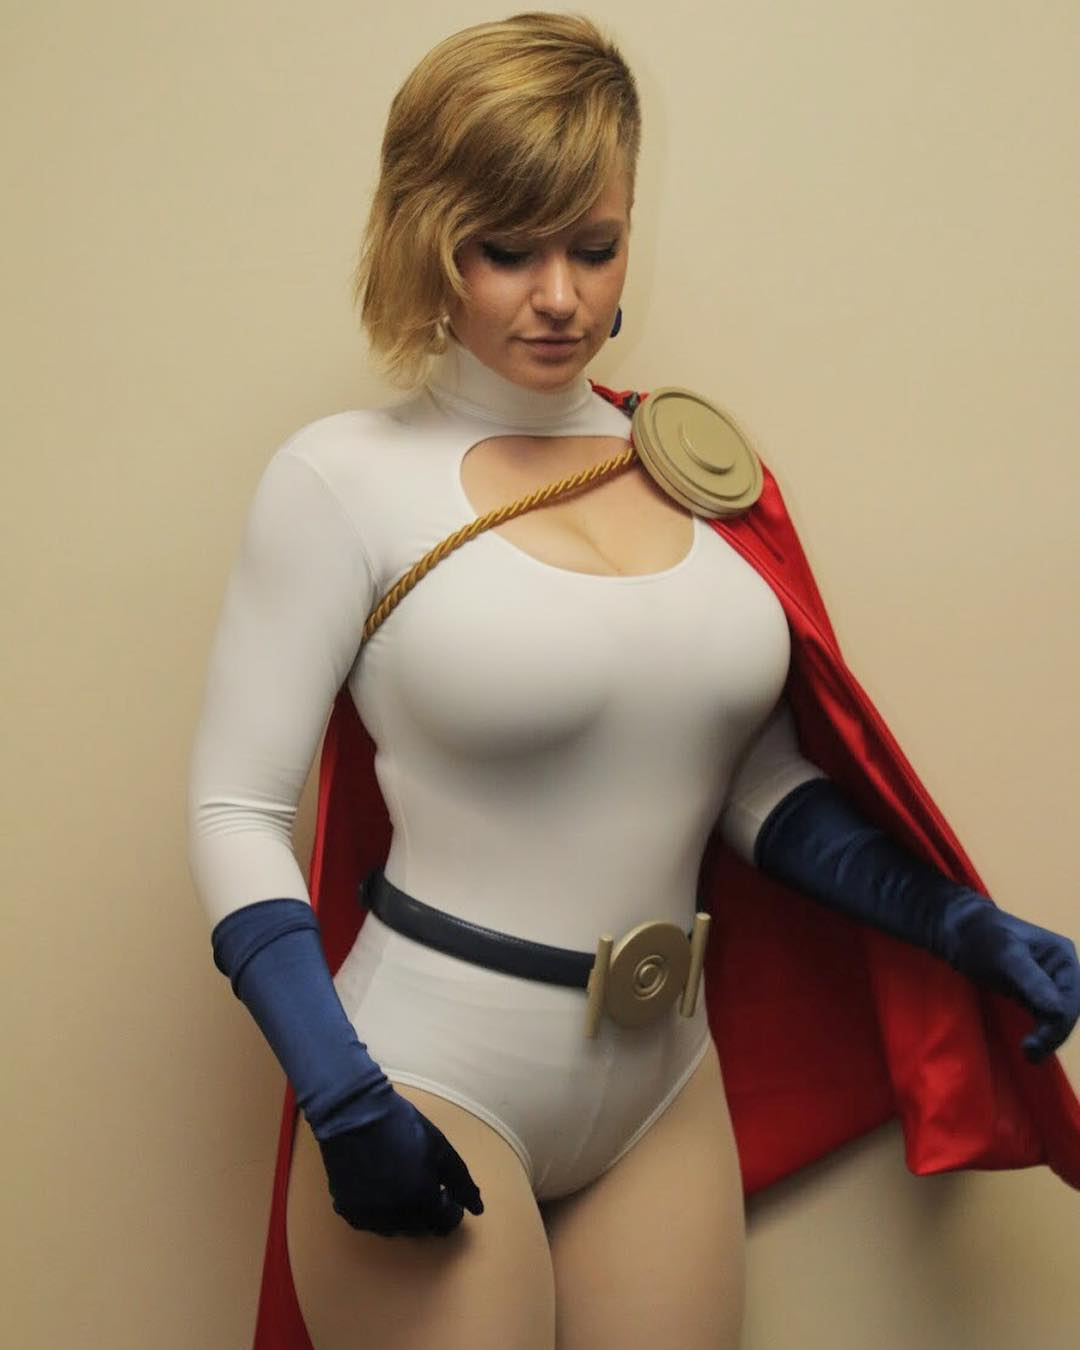 MADISON as Powergirl MADISON as Powergirl